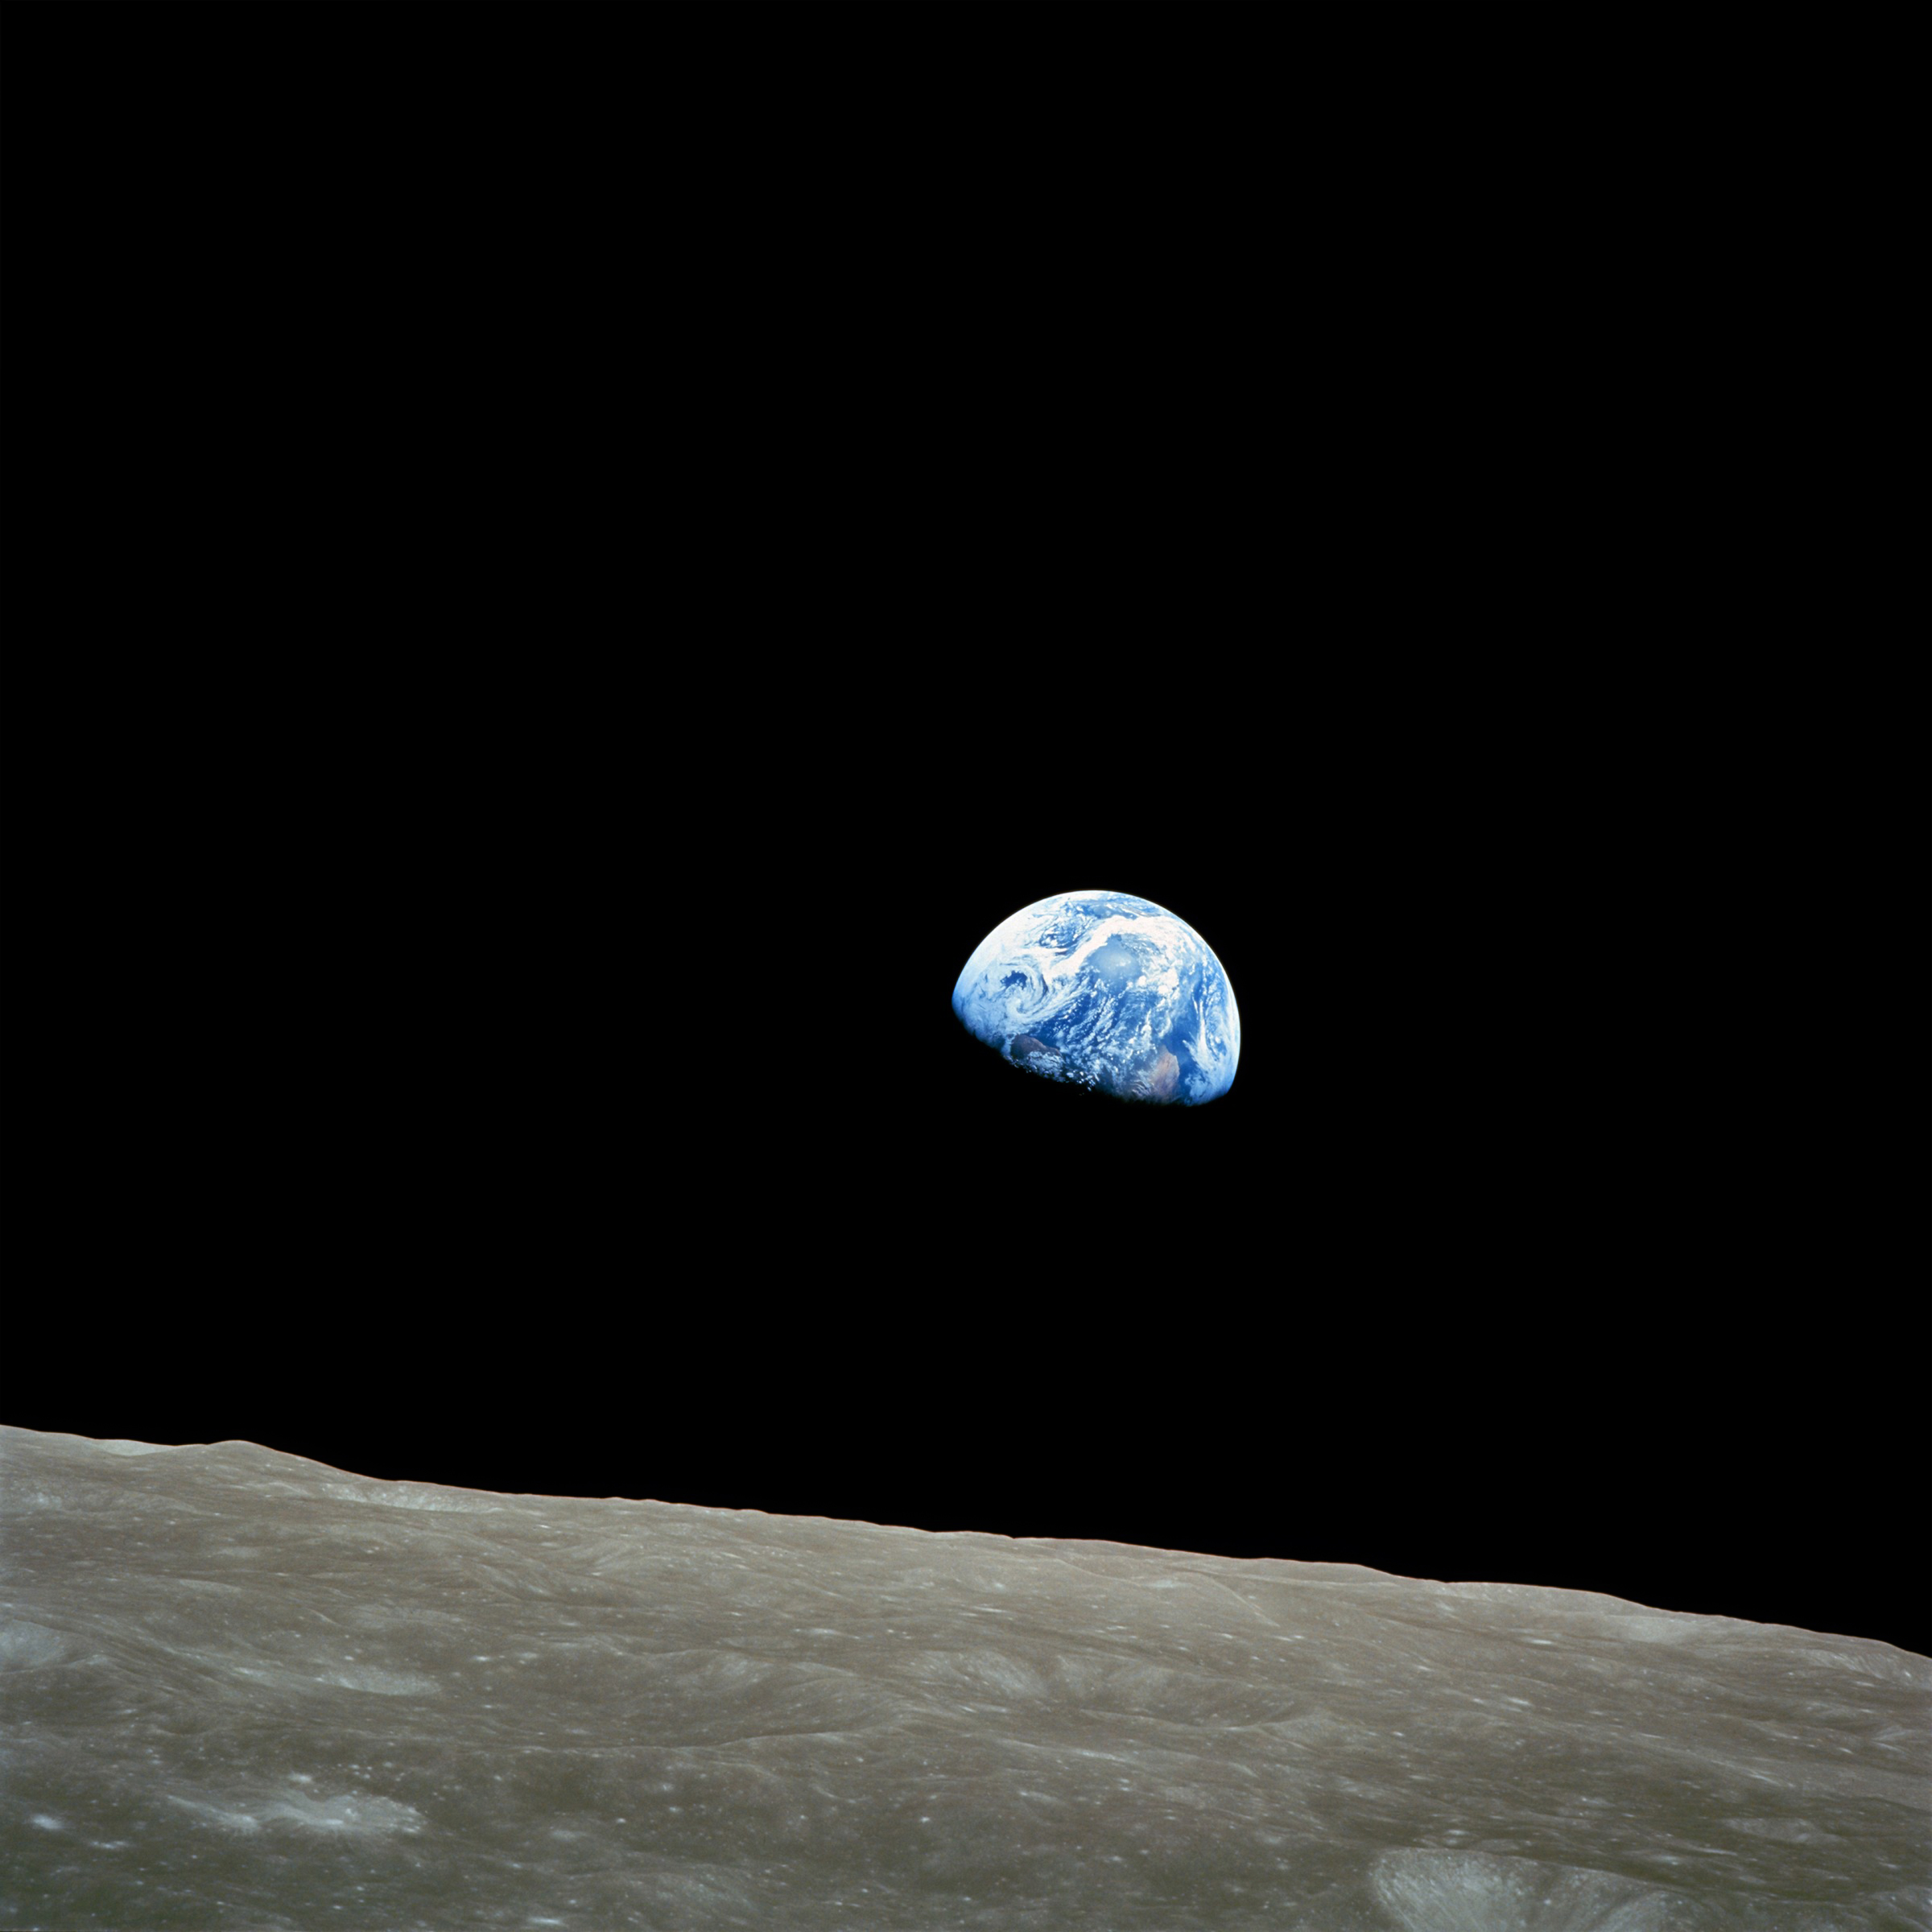 Earth seen from Moon